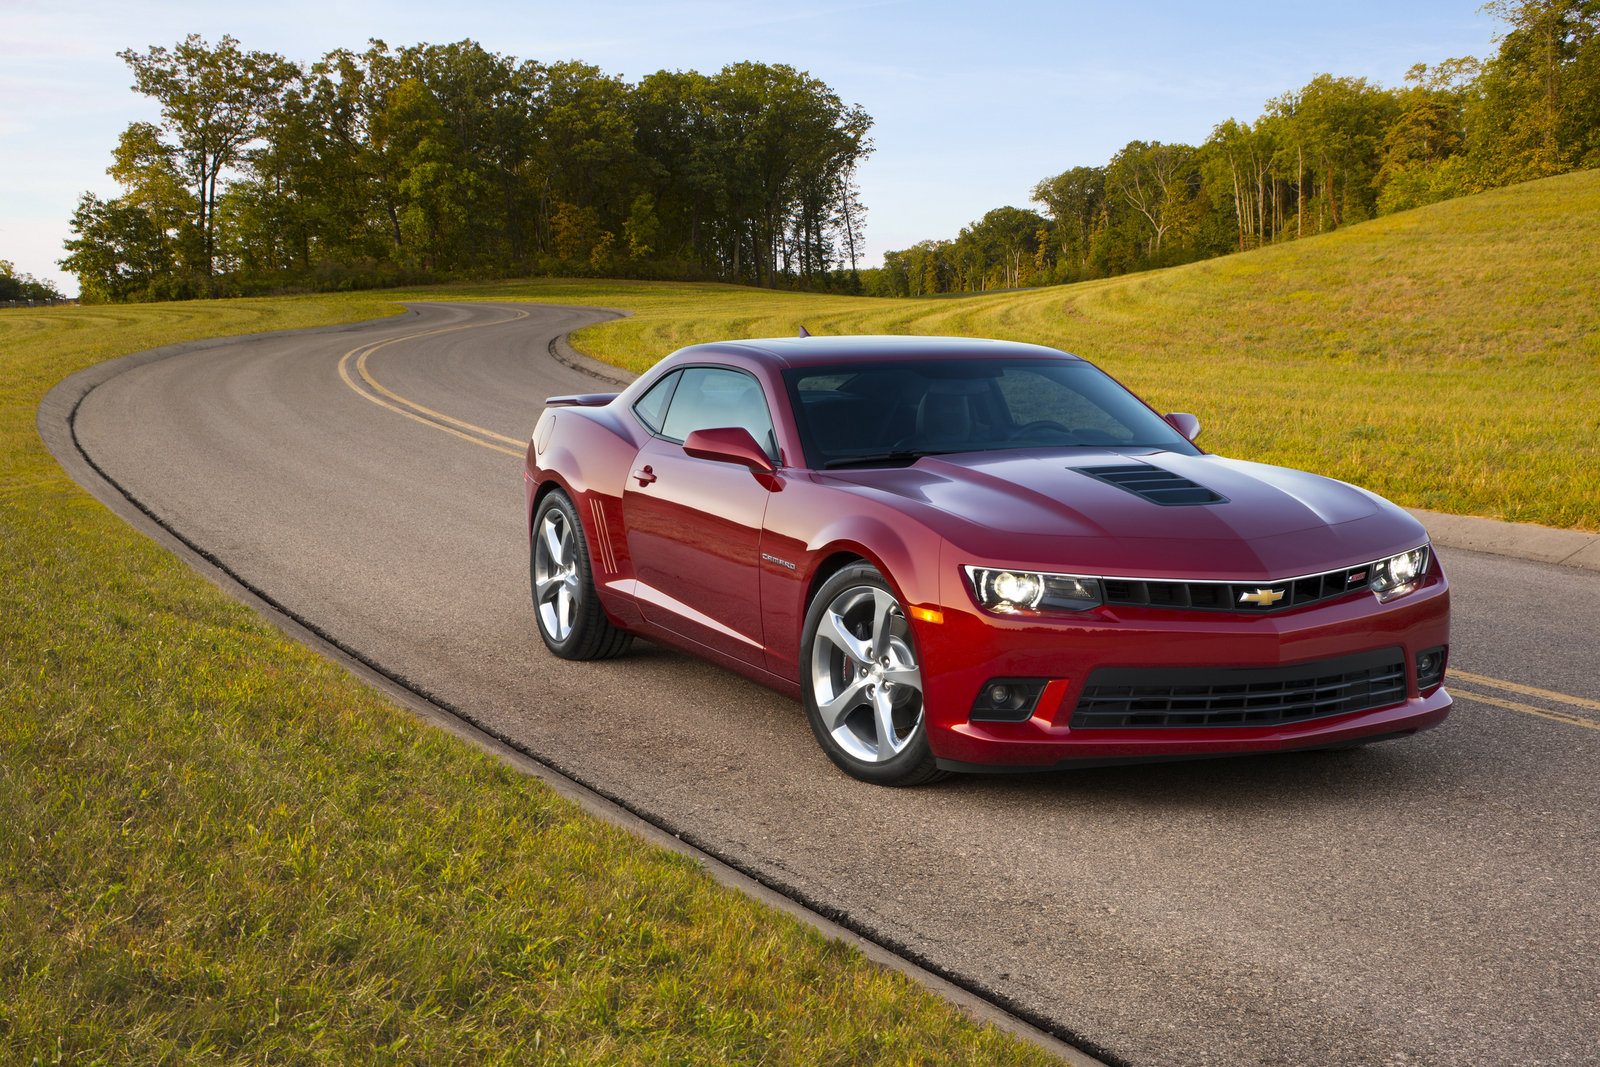 2014 - 2015 chevrolet camaro ss review - top speed